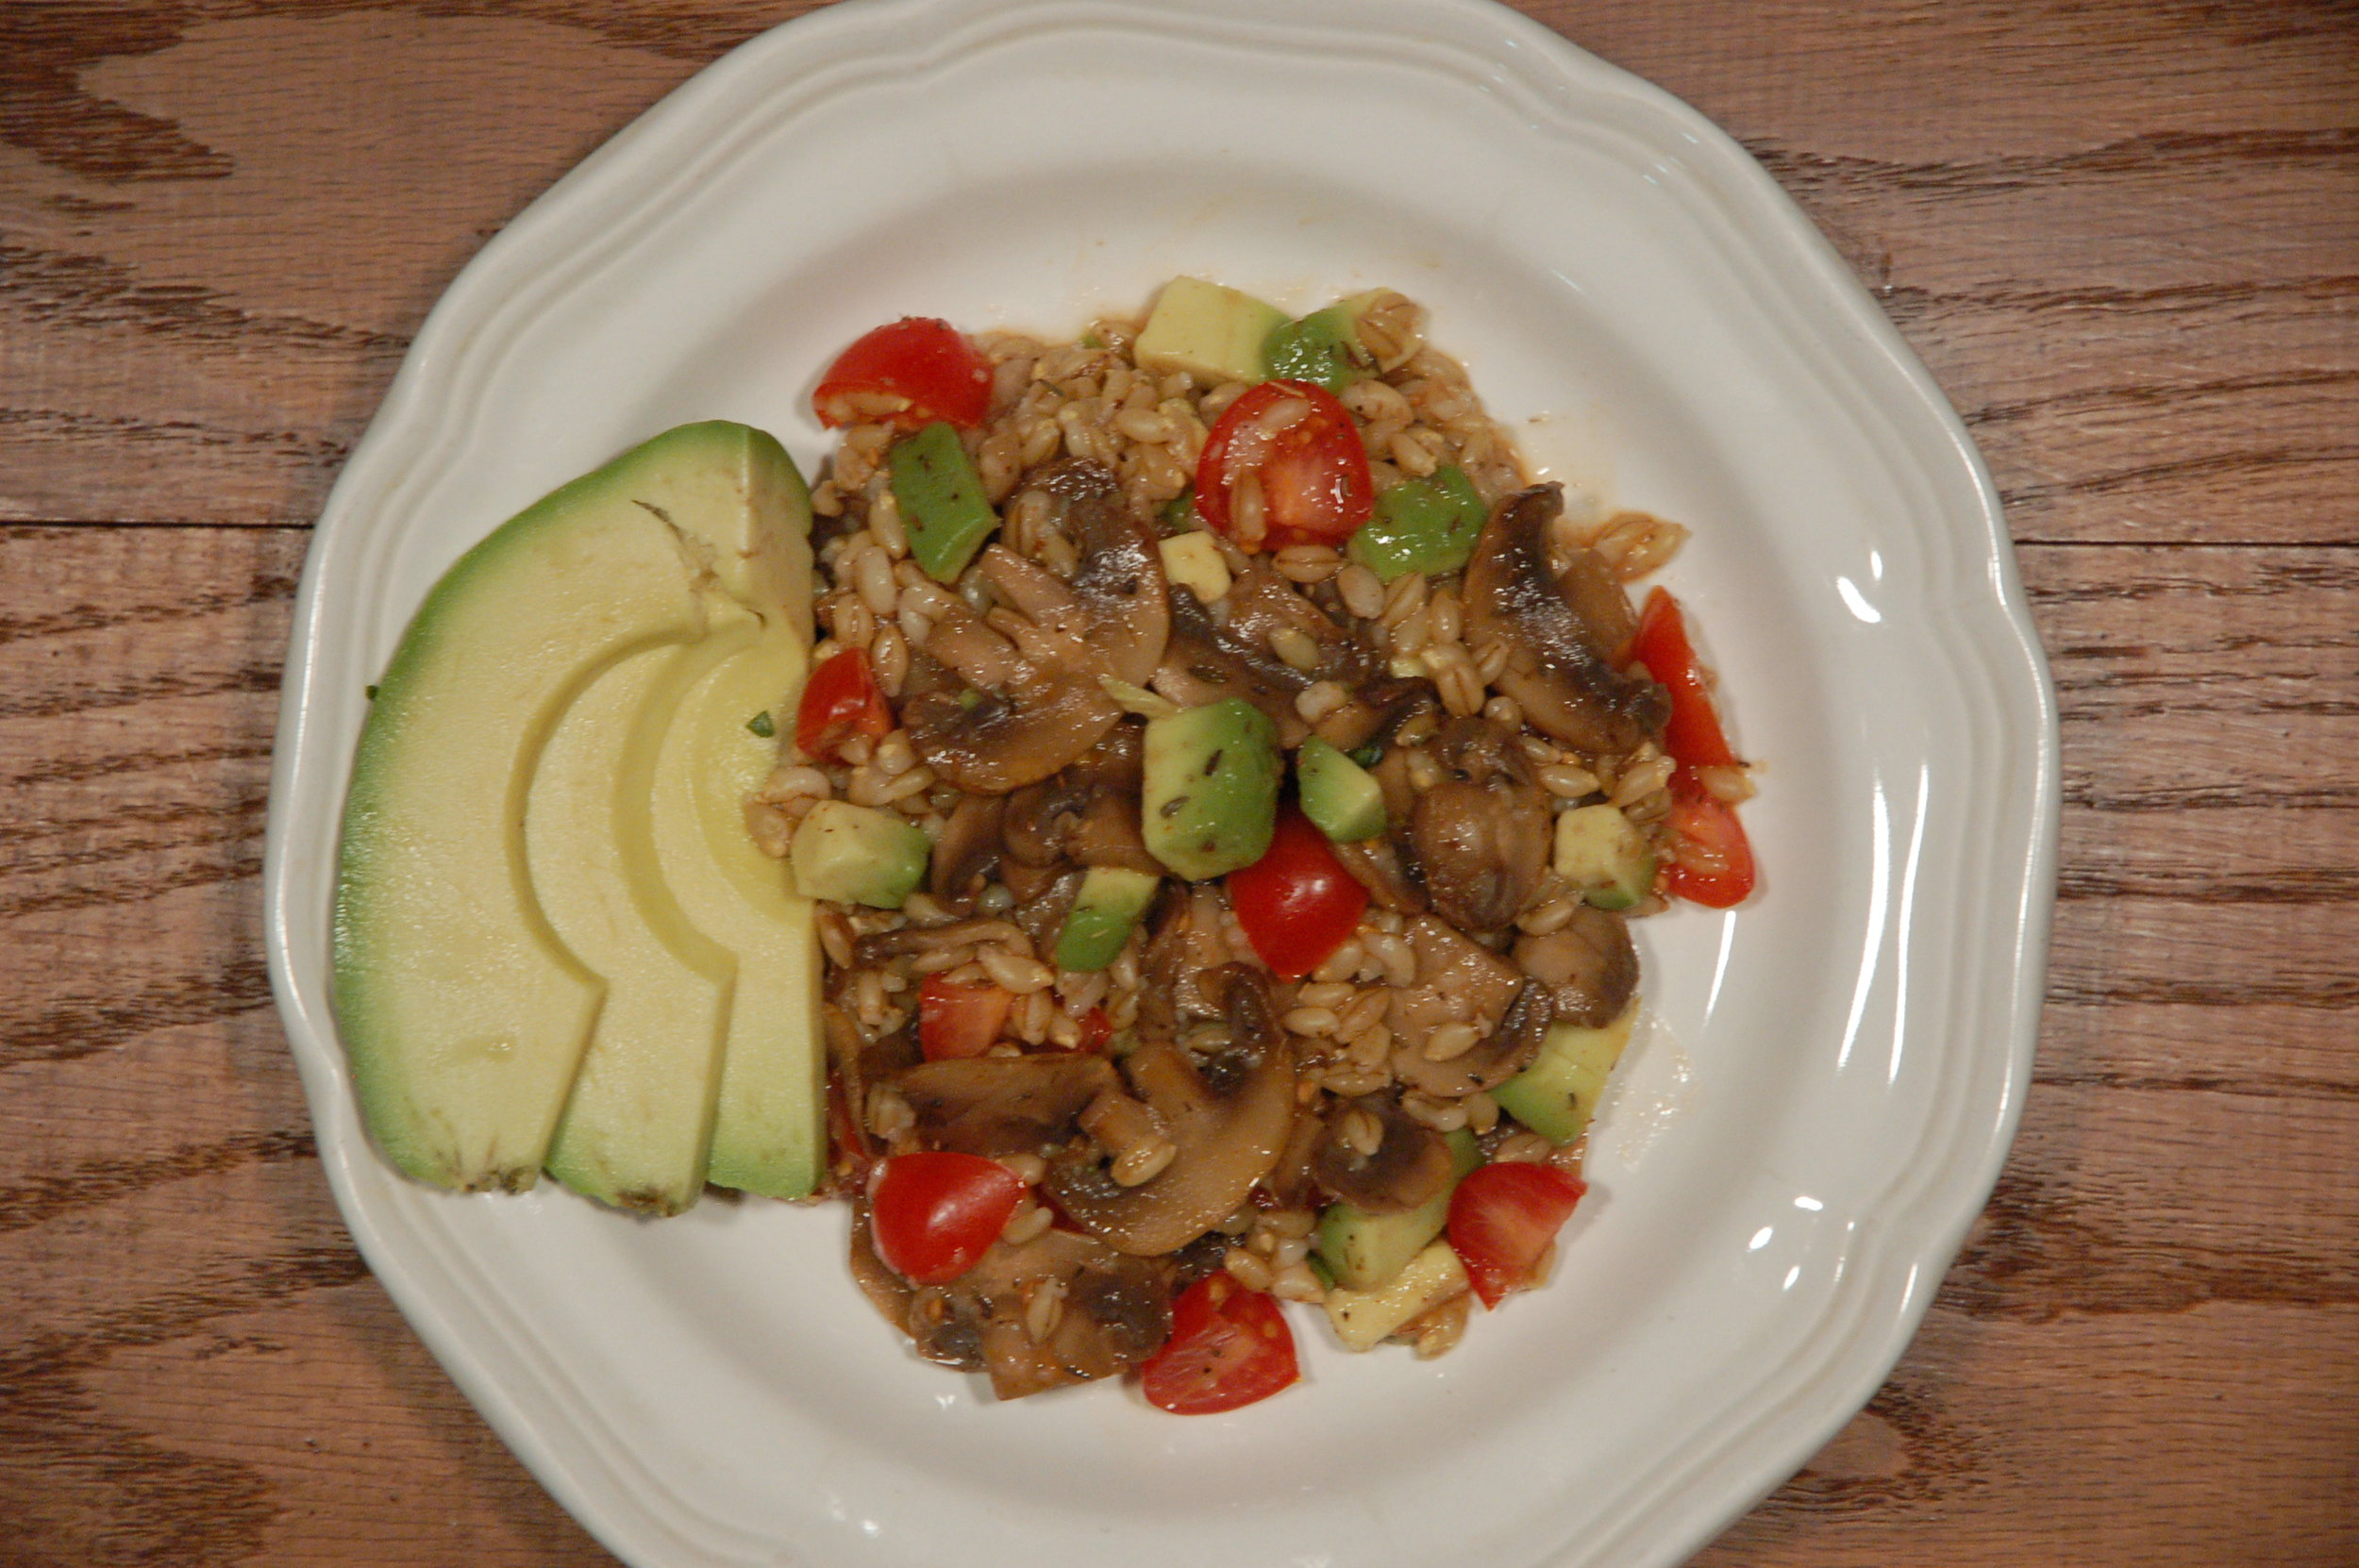 Simple 3-item dish: Whole Grain Barley with Tomatoes, Avocado, & Mushrooms